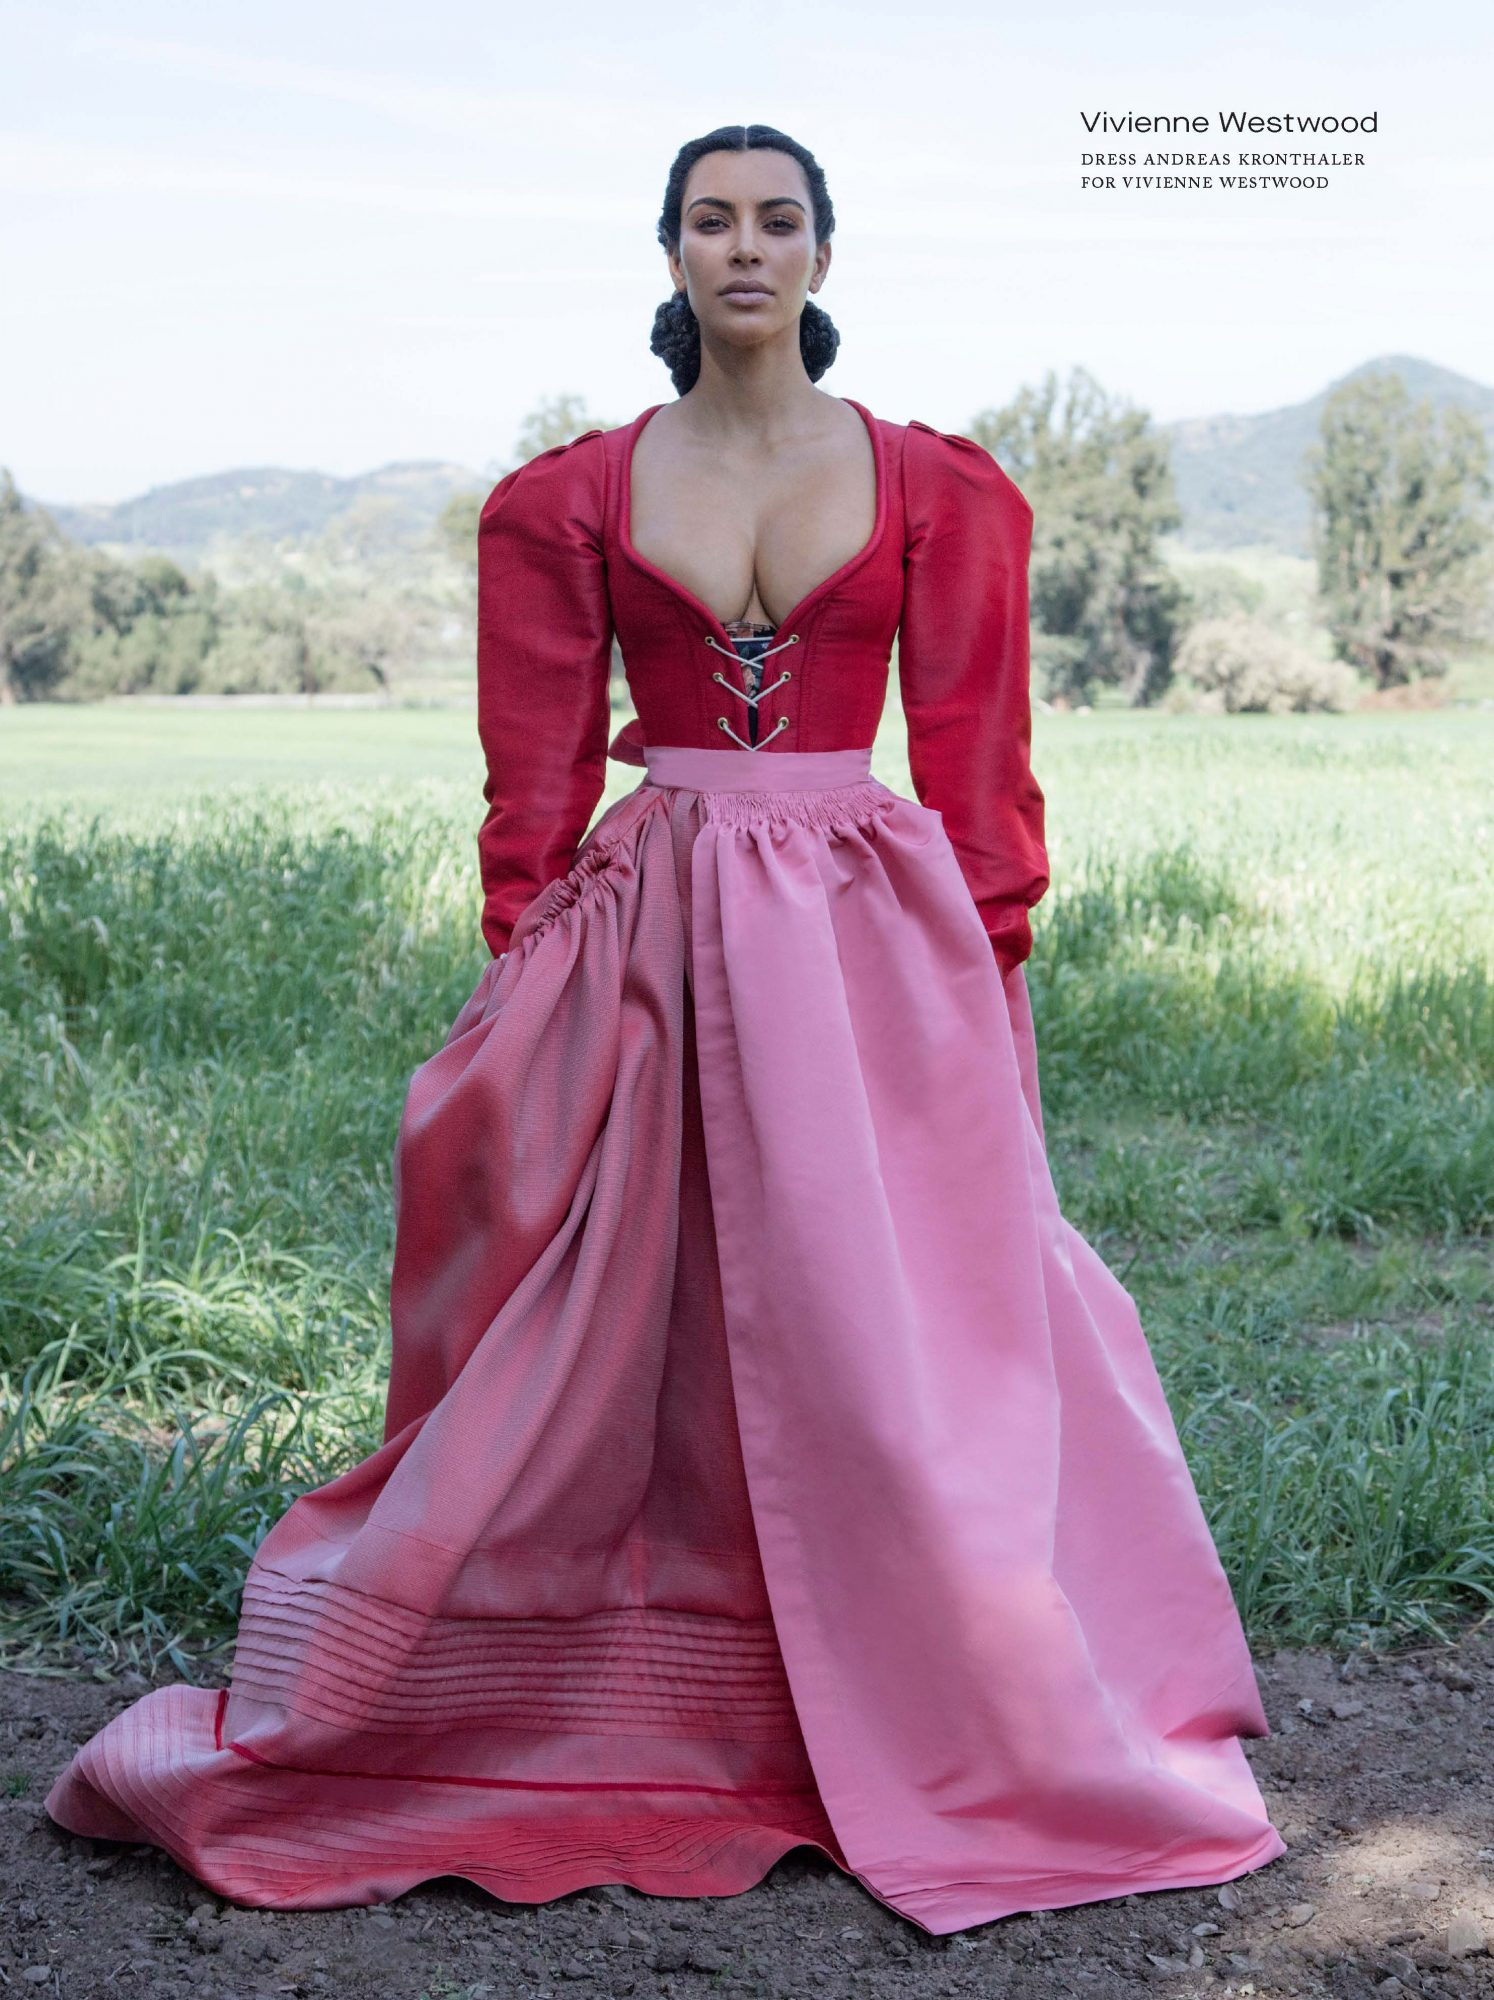 Kim K- CRFB13 for People (2)